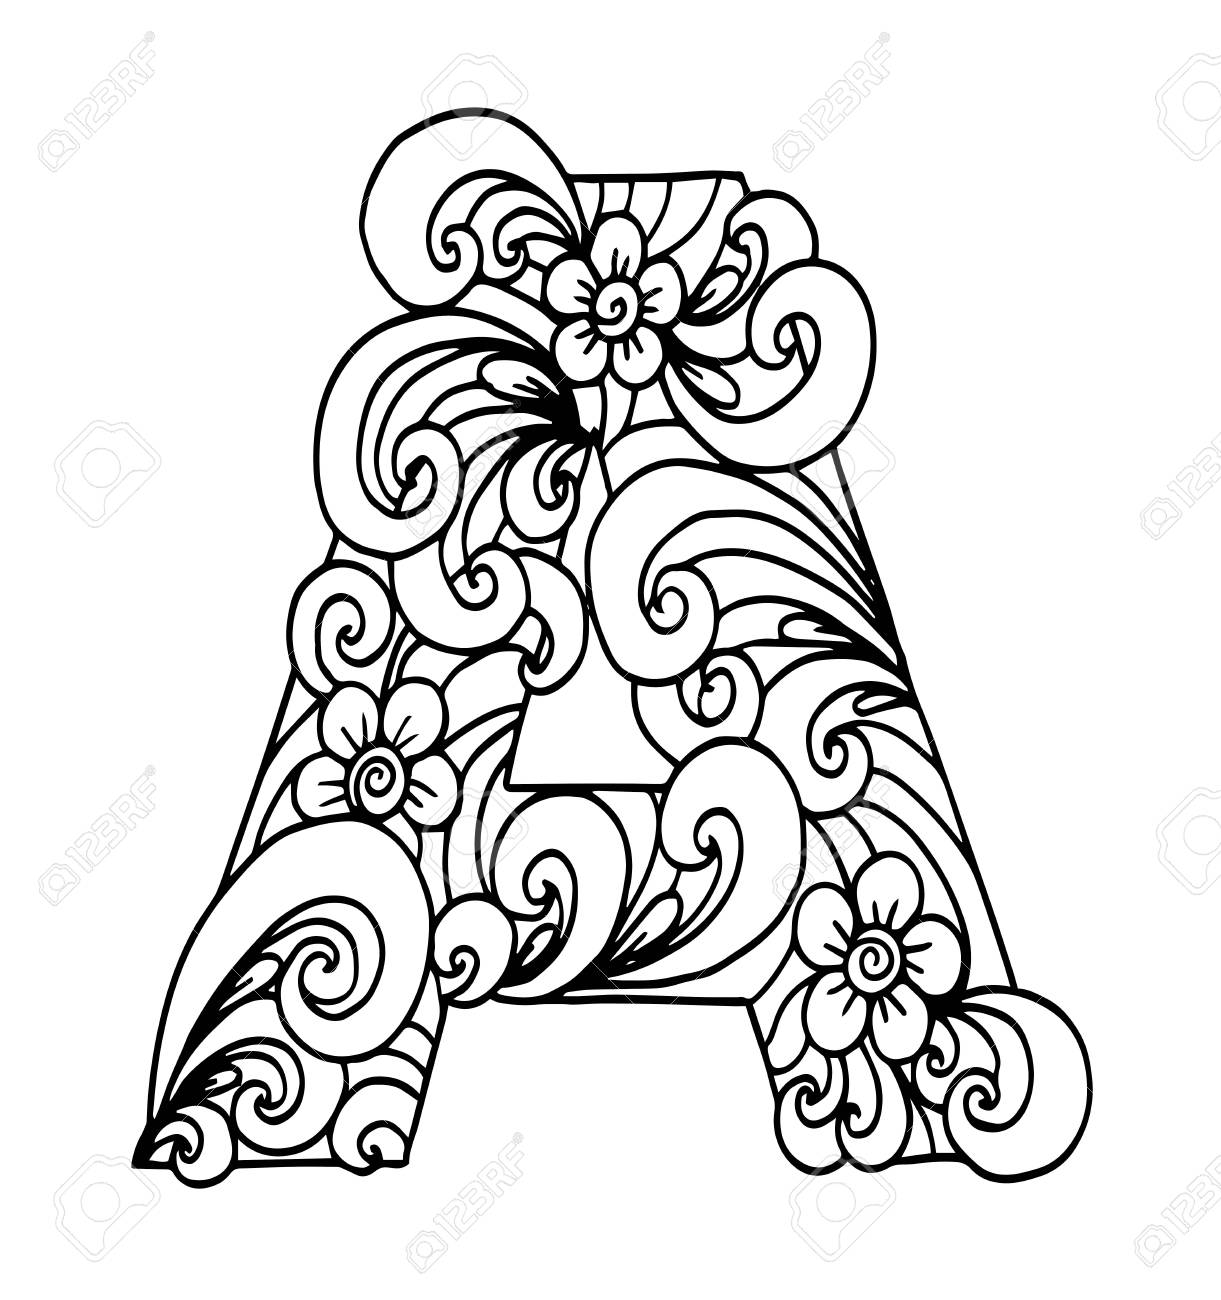 Stylized Alphabet Letter A In Doodle Style Hand Drawn Sketch Royalty Free Cliparts Vectors And Stock Illustration Image 95391360